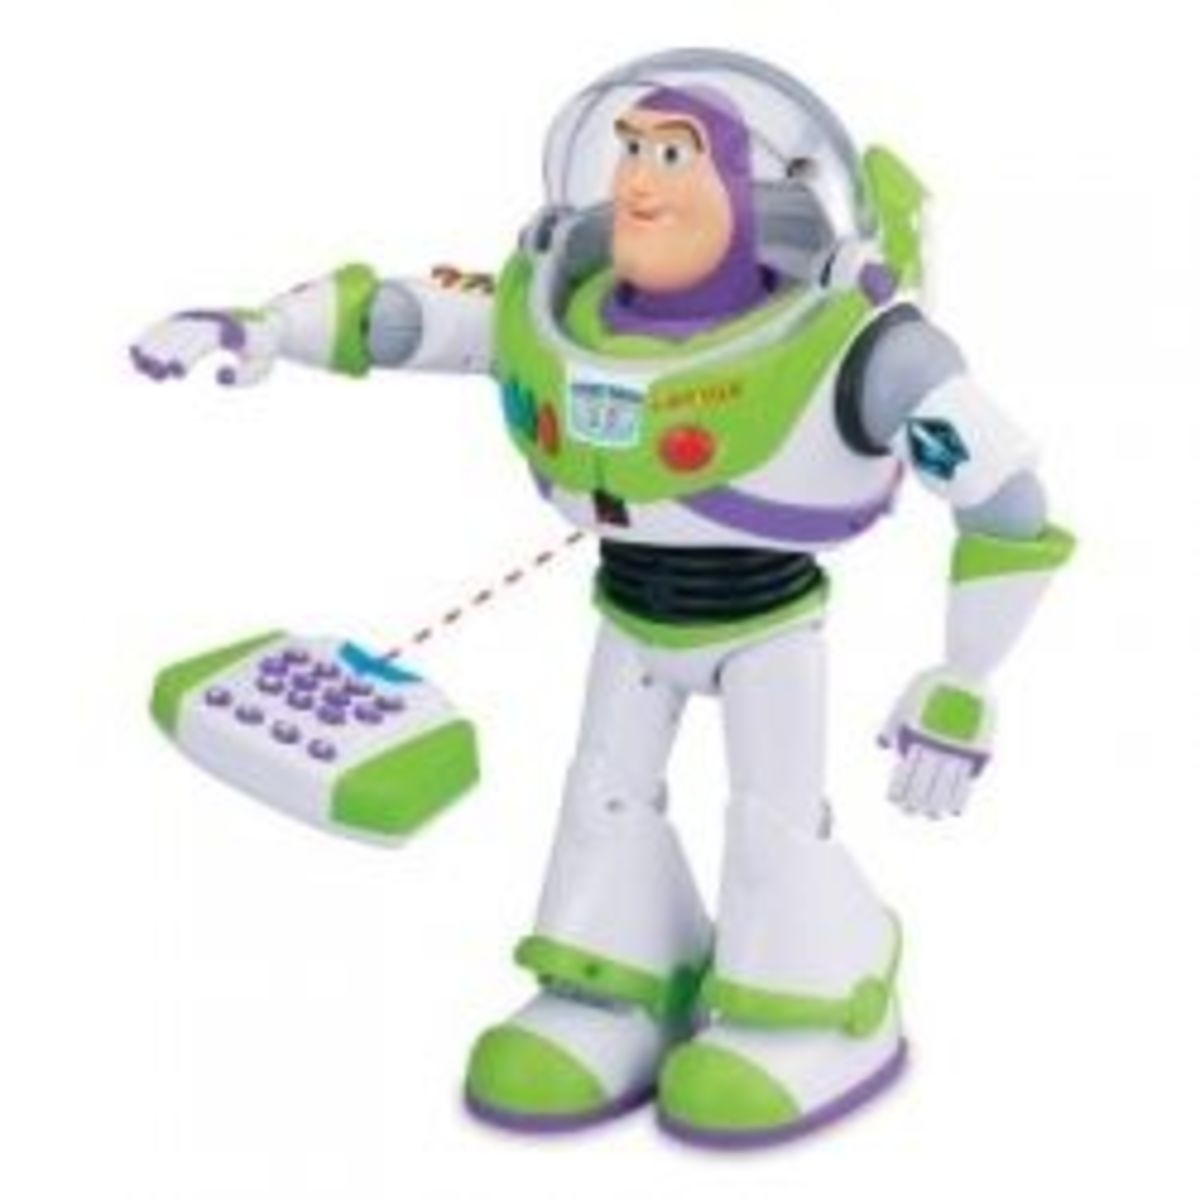 Ultimate Buzz Lightyear Robot